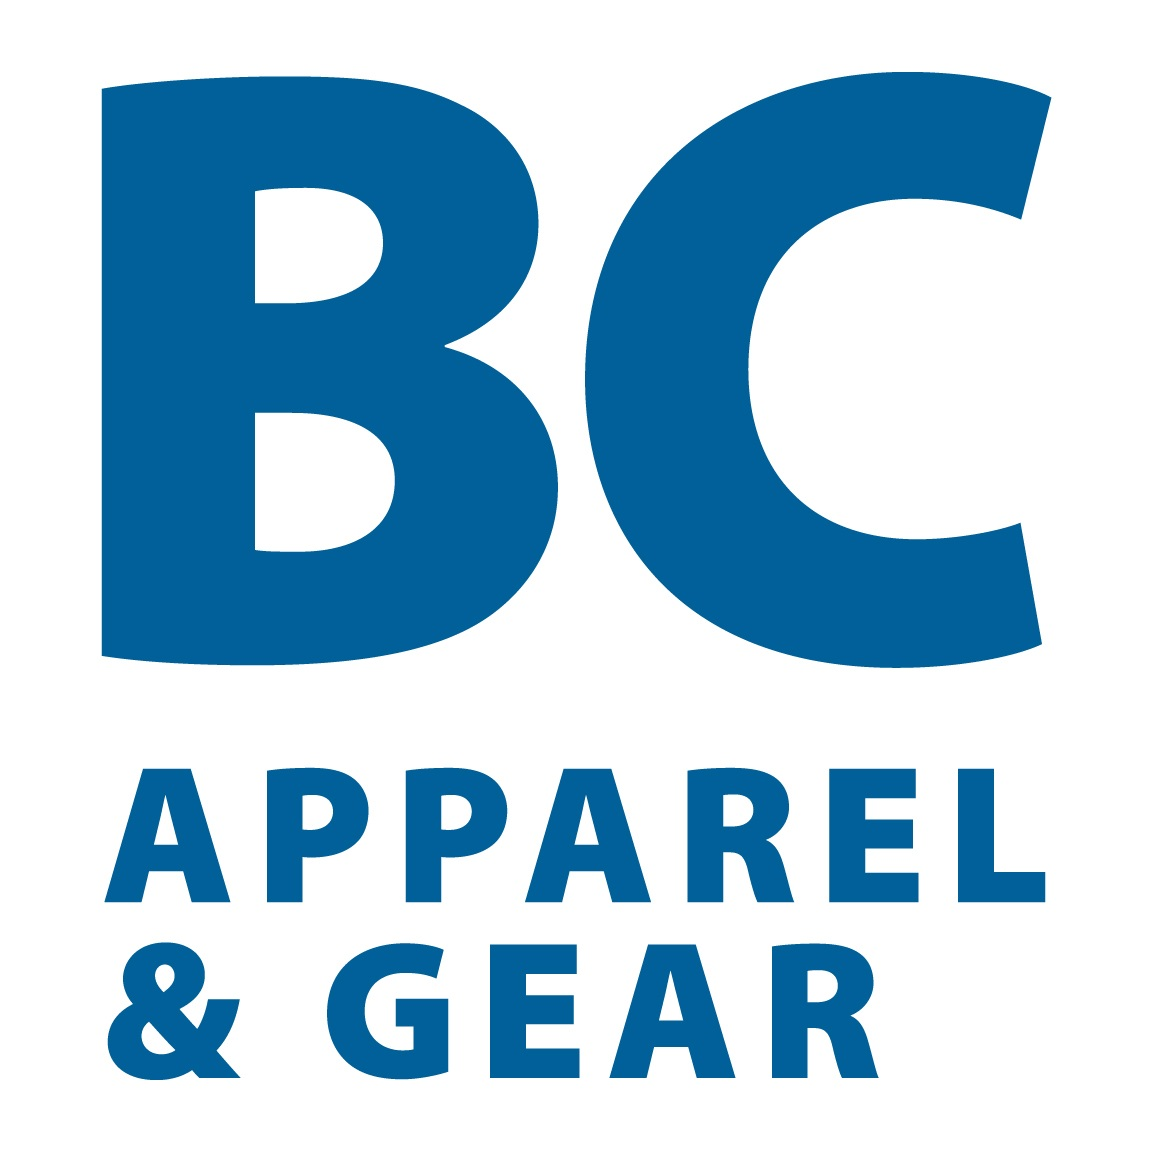 how BCAG will make a difference - We have a three point plan that focuses on launching the the BC Apparel & Gear Association, investing in developing and attracting world-class talent and scaling the growth and achieve sustainable global competitiveness.